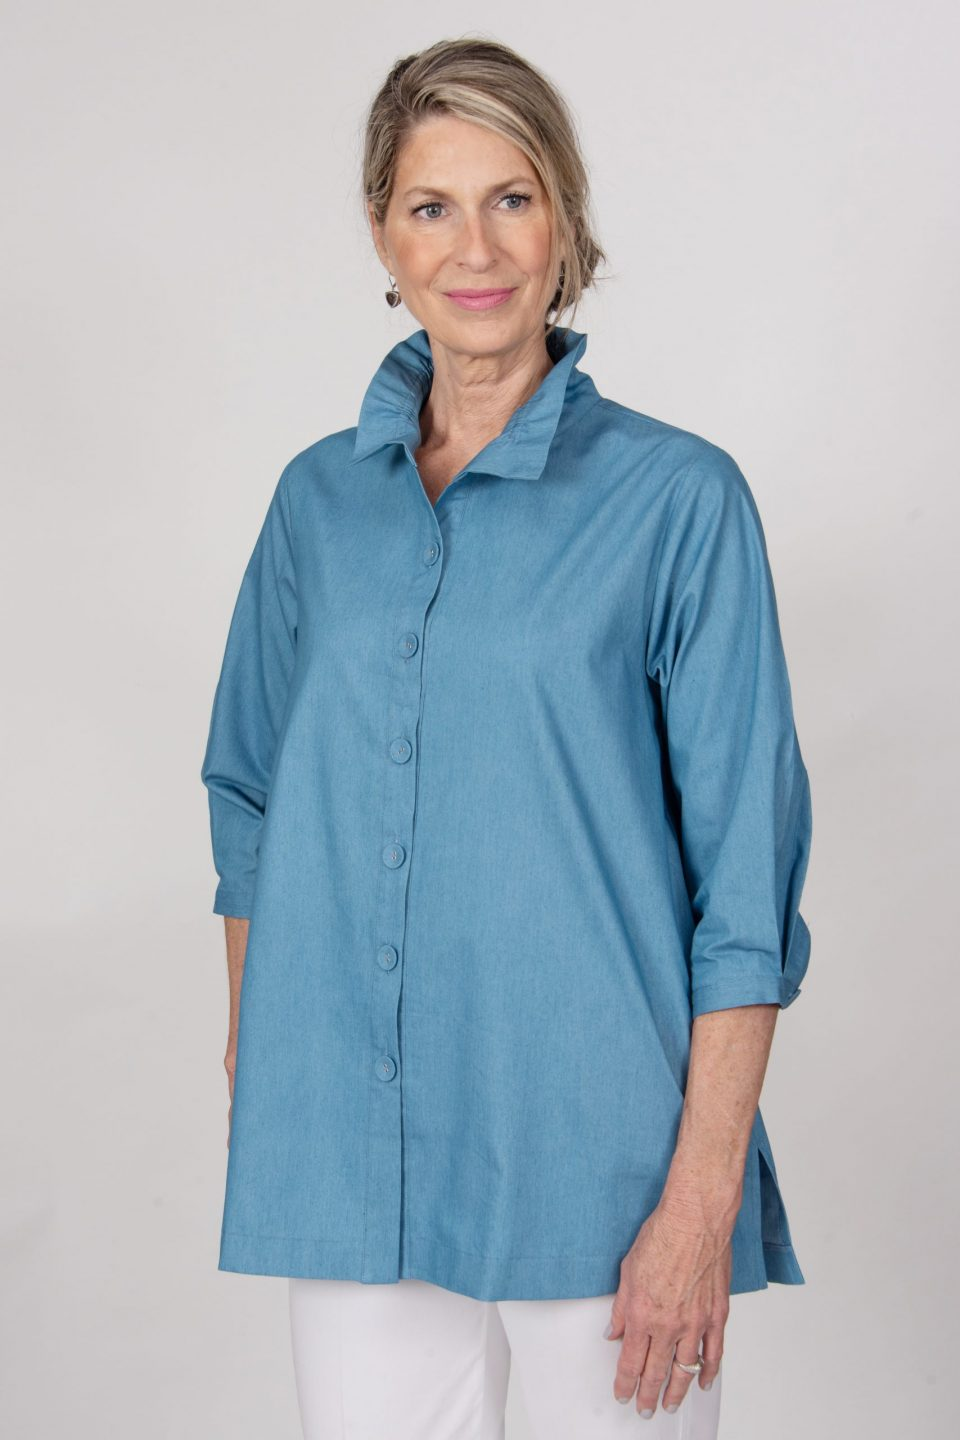 Beach House Blouse Chambray Front- Diane Bailey Designs